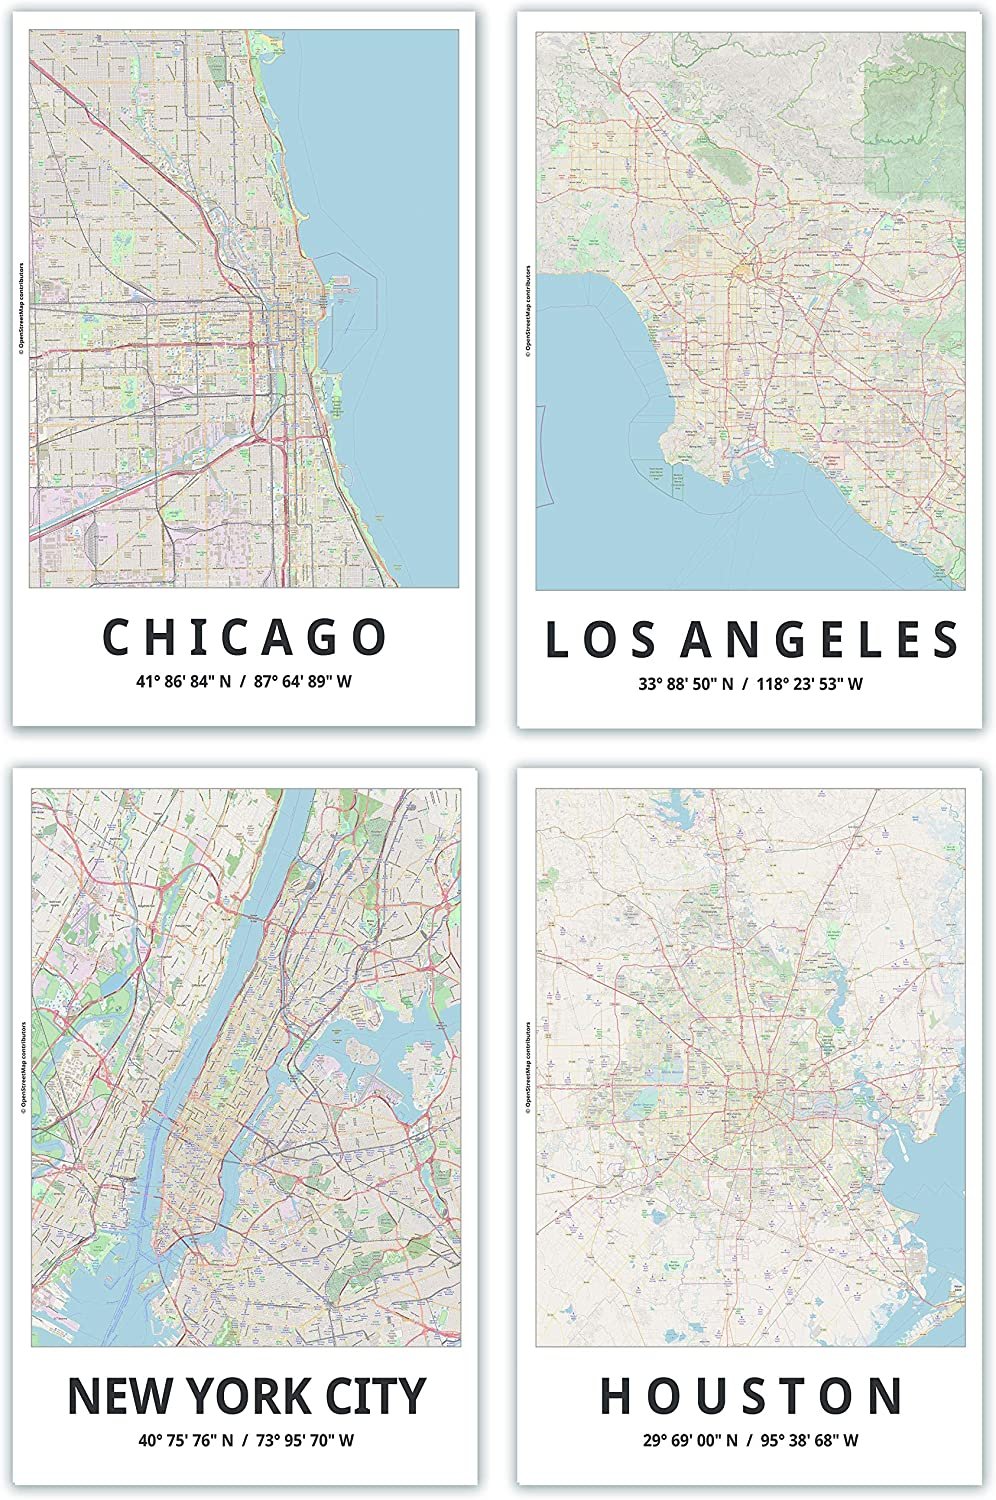 Map Posters, 11x17 Inches, Set of 4, Modern Wall Art, Major Cities of the United States, Chicago, Los Angeles, New York City, Houston, Modern Wall Decor for Home Office, Bedroom, Living Room